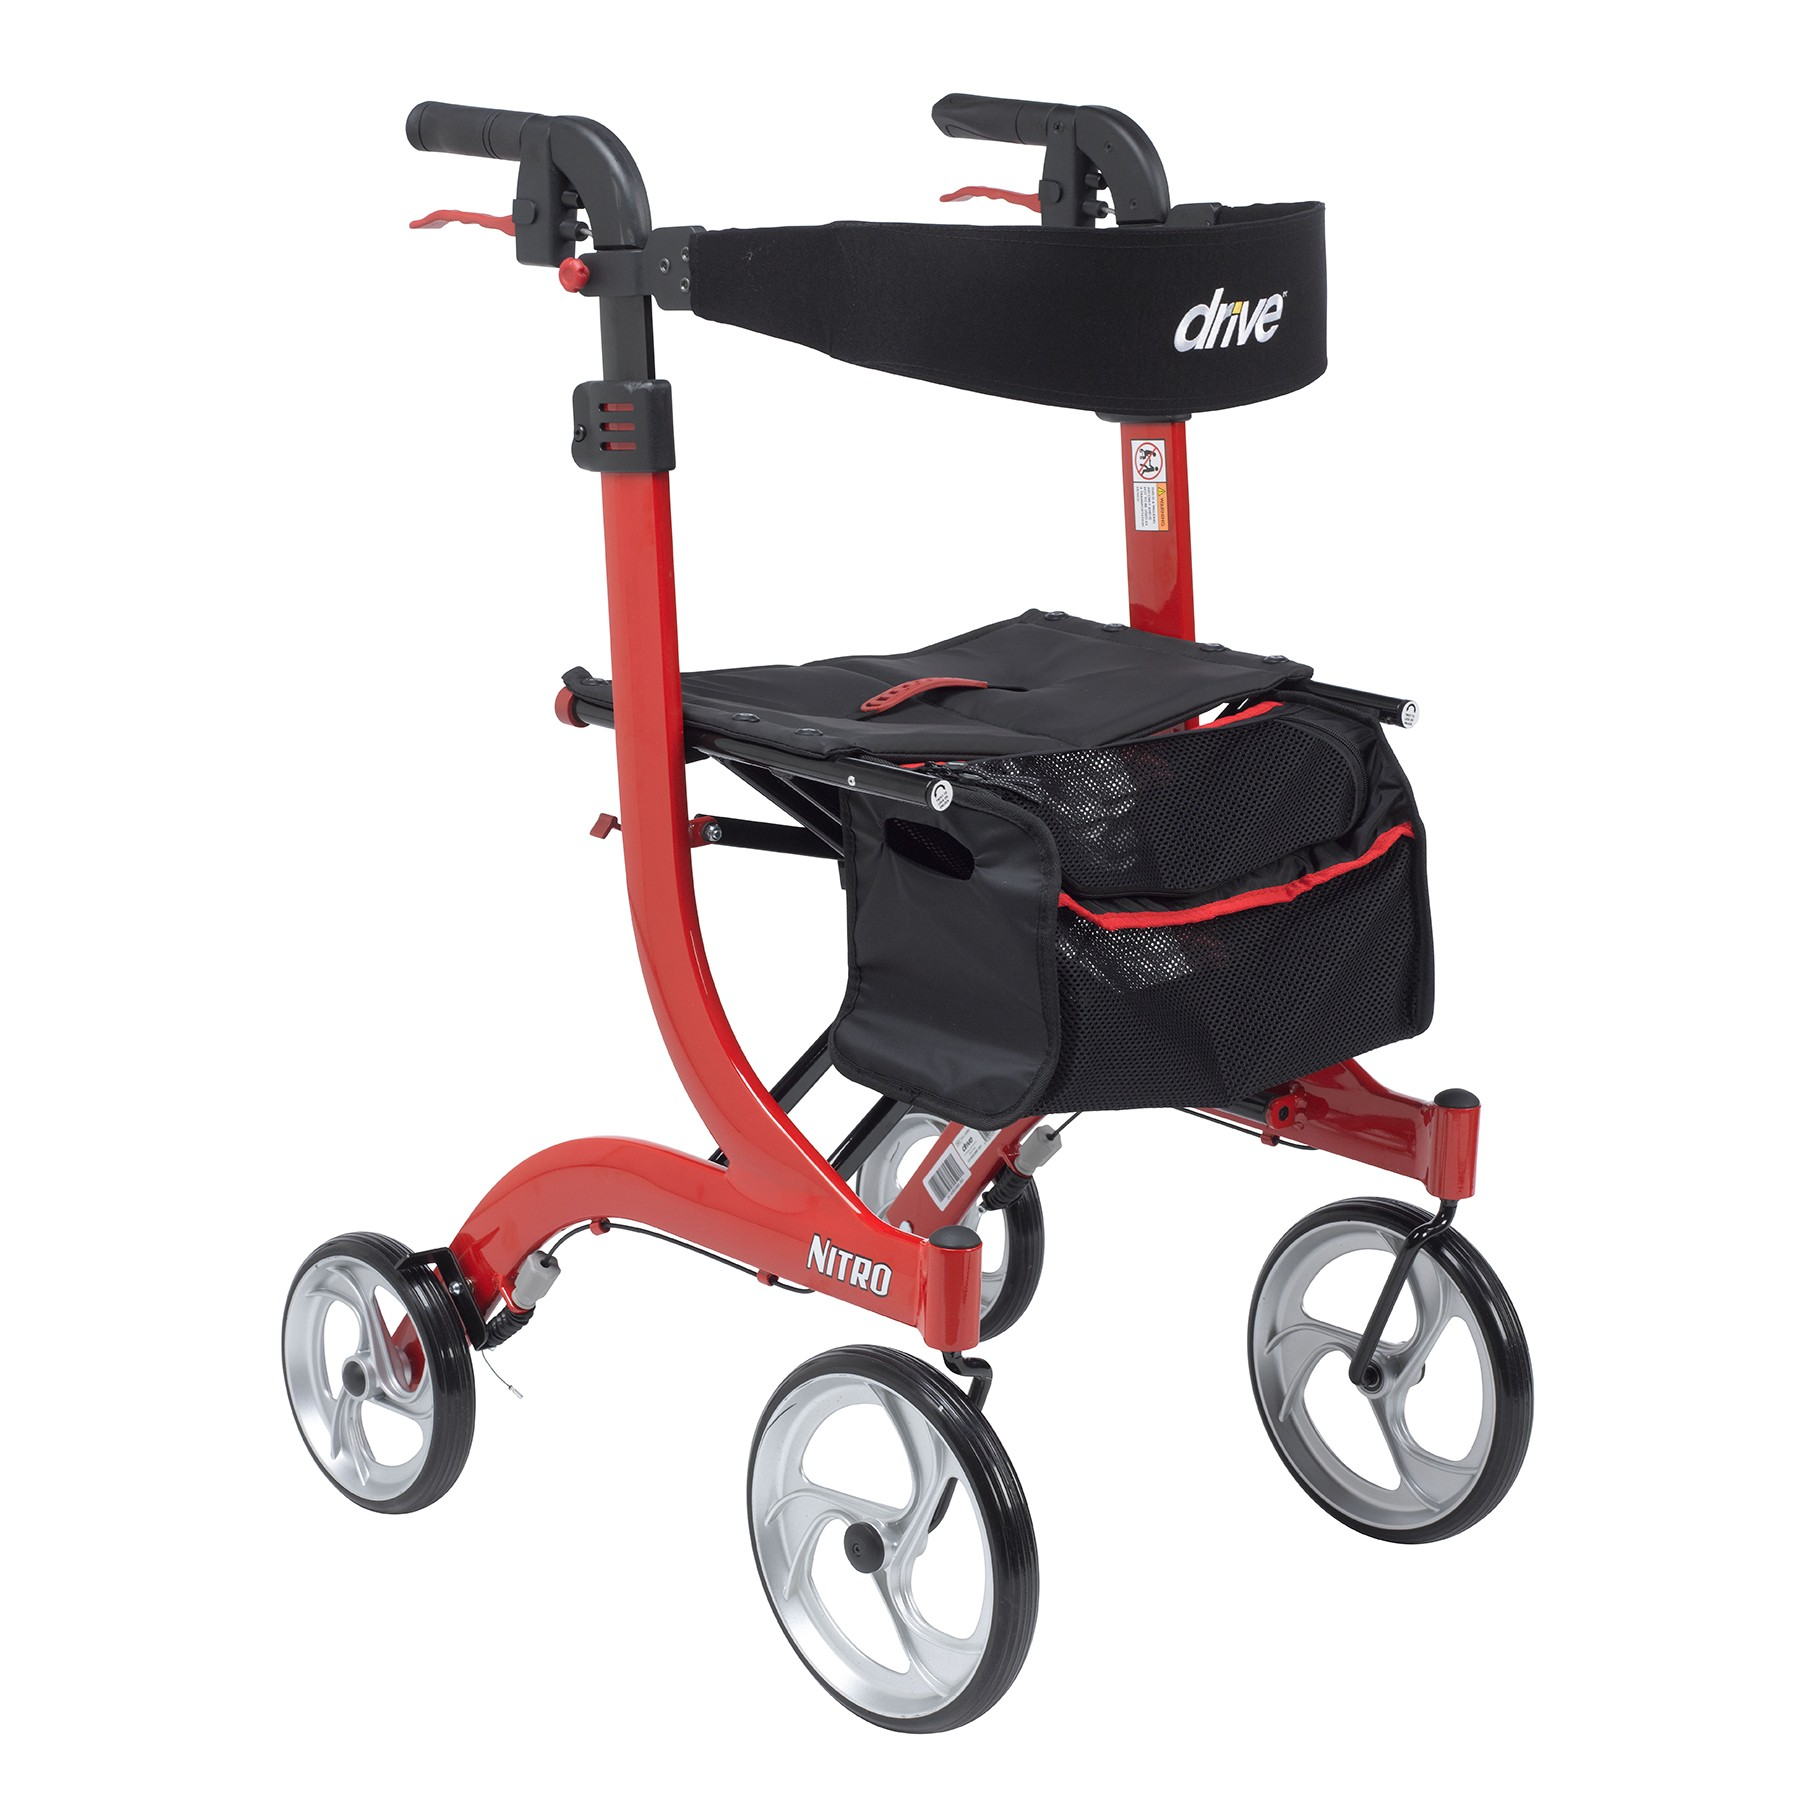 """Nitro Aluminum Rollator, Tall Height, 10"""" Casters - On The Mend Medical Supplies & Equipment"""